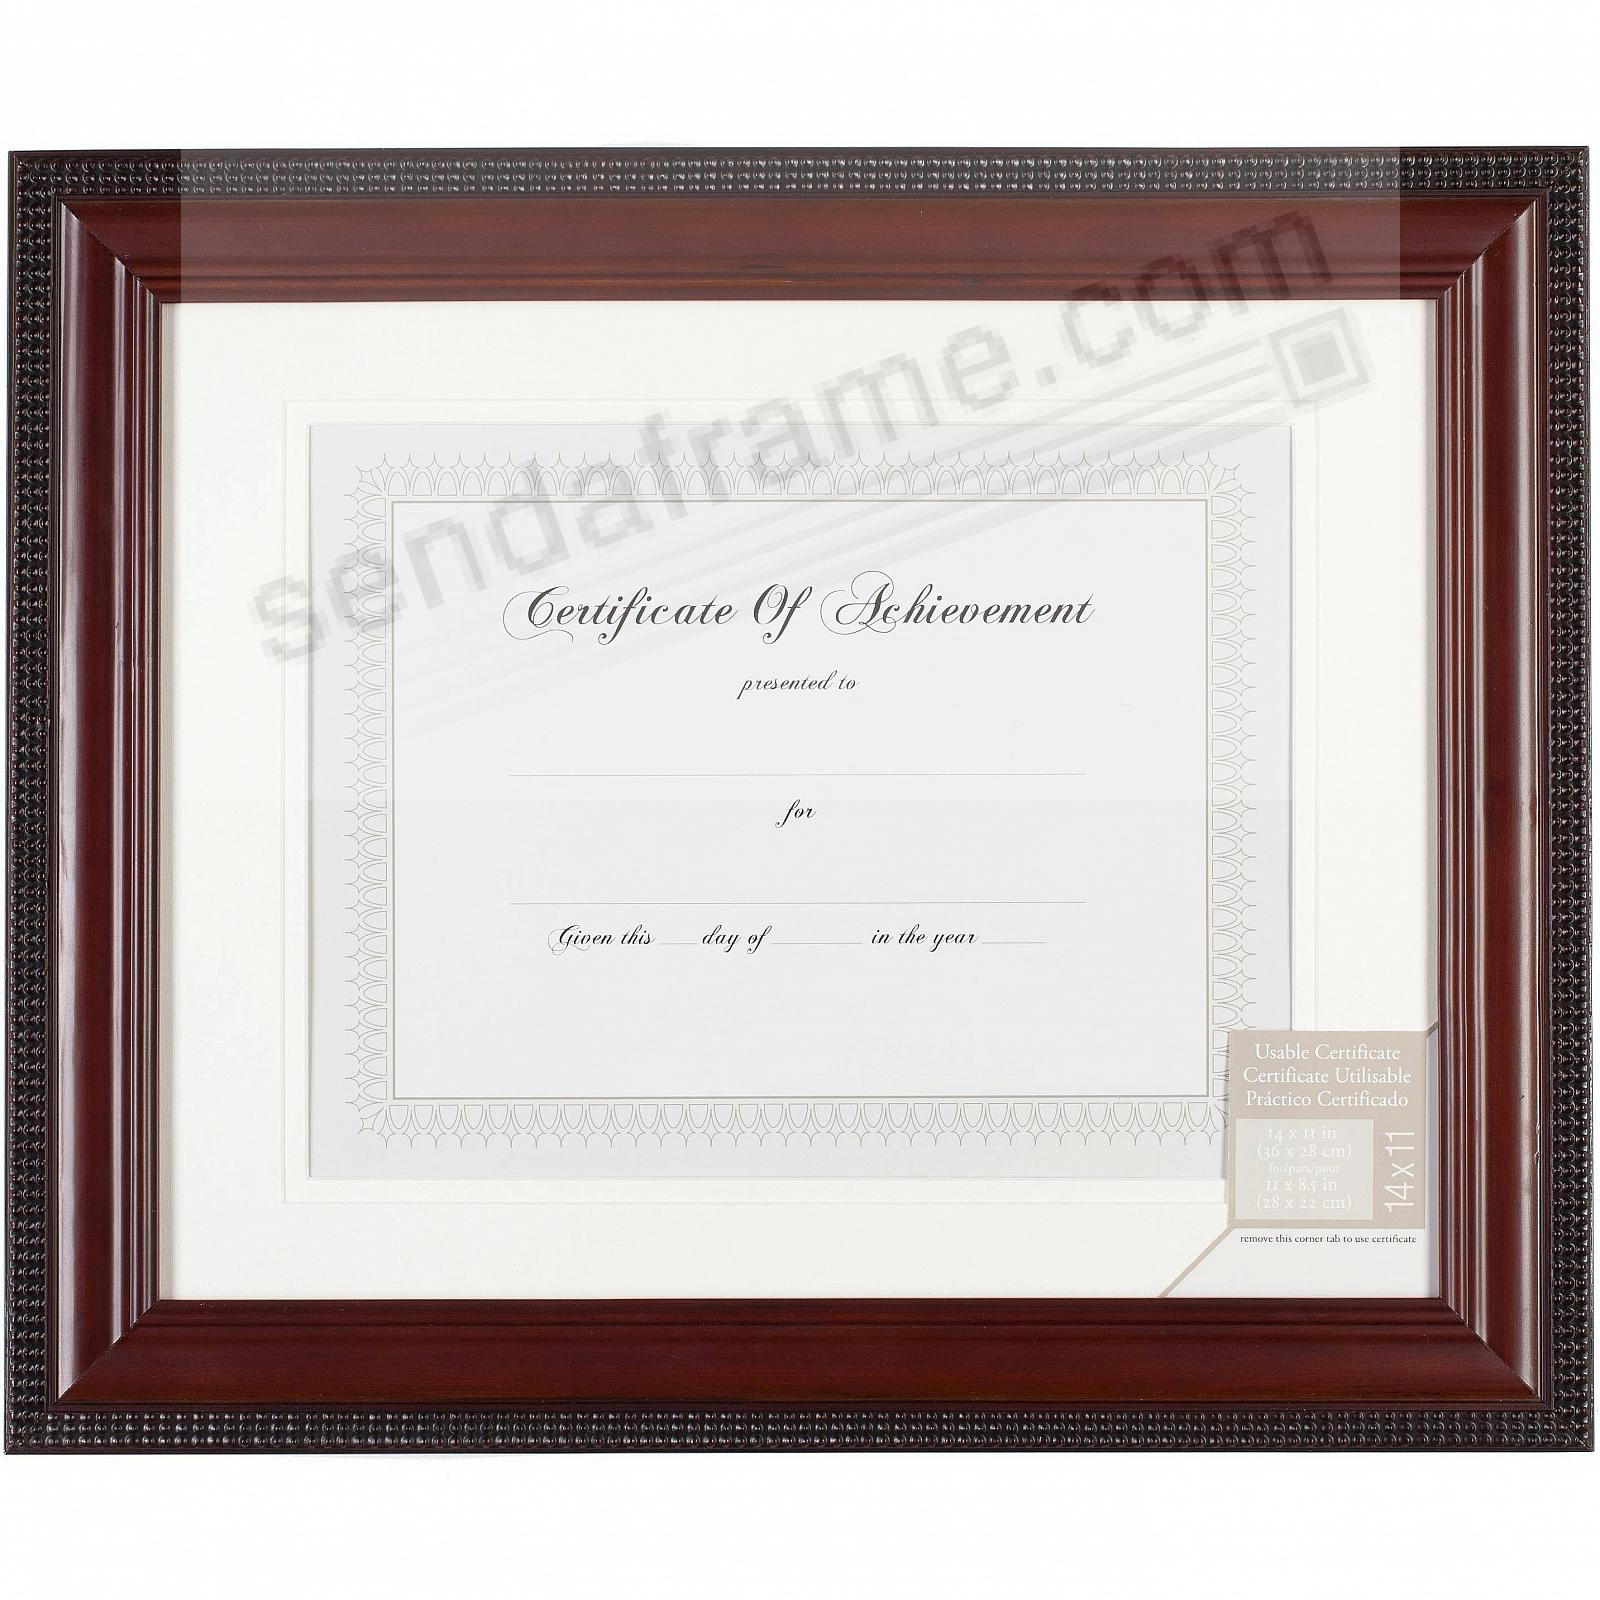 BEAD BORDER Mahogany finish matted 14x11/11x8½ certificate frame by Gallery Solutions®